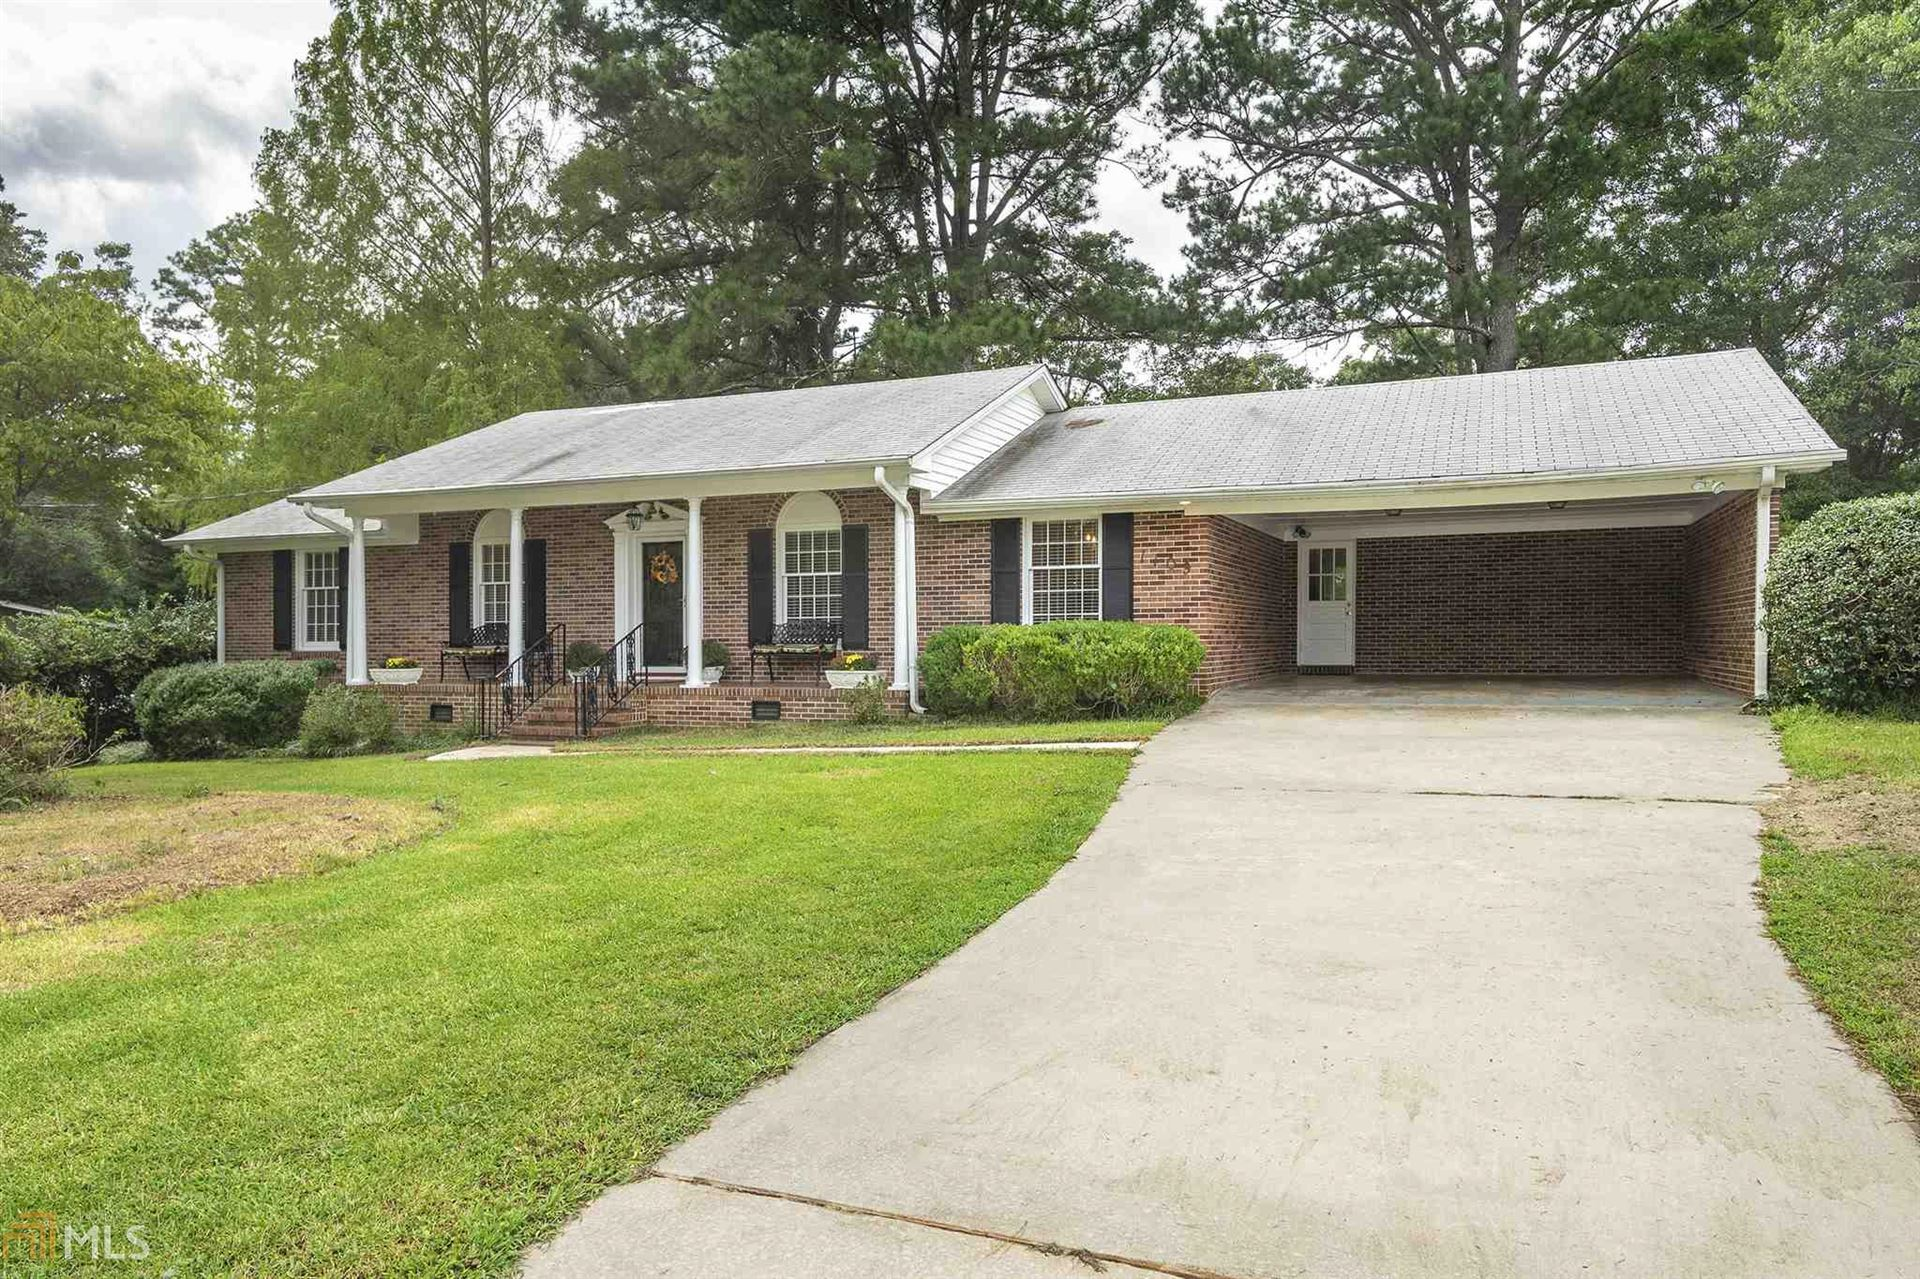 1109 Placid Rd, Griffin, GA 30223 - #: 8841201